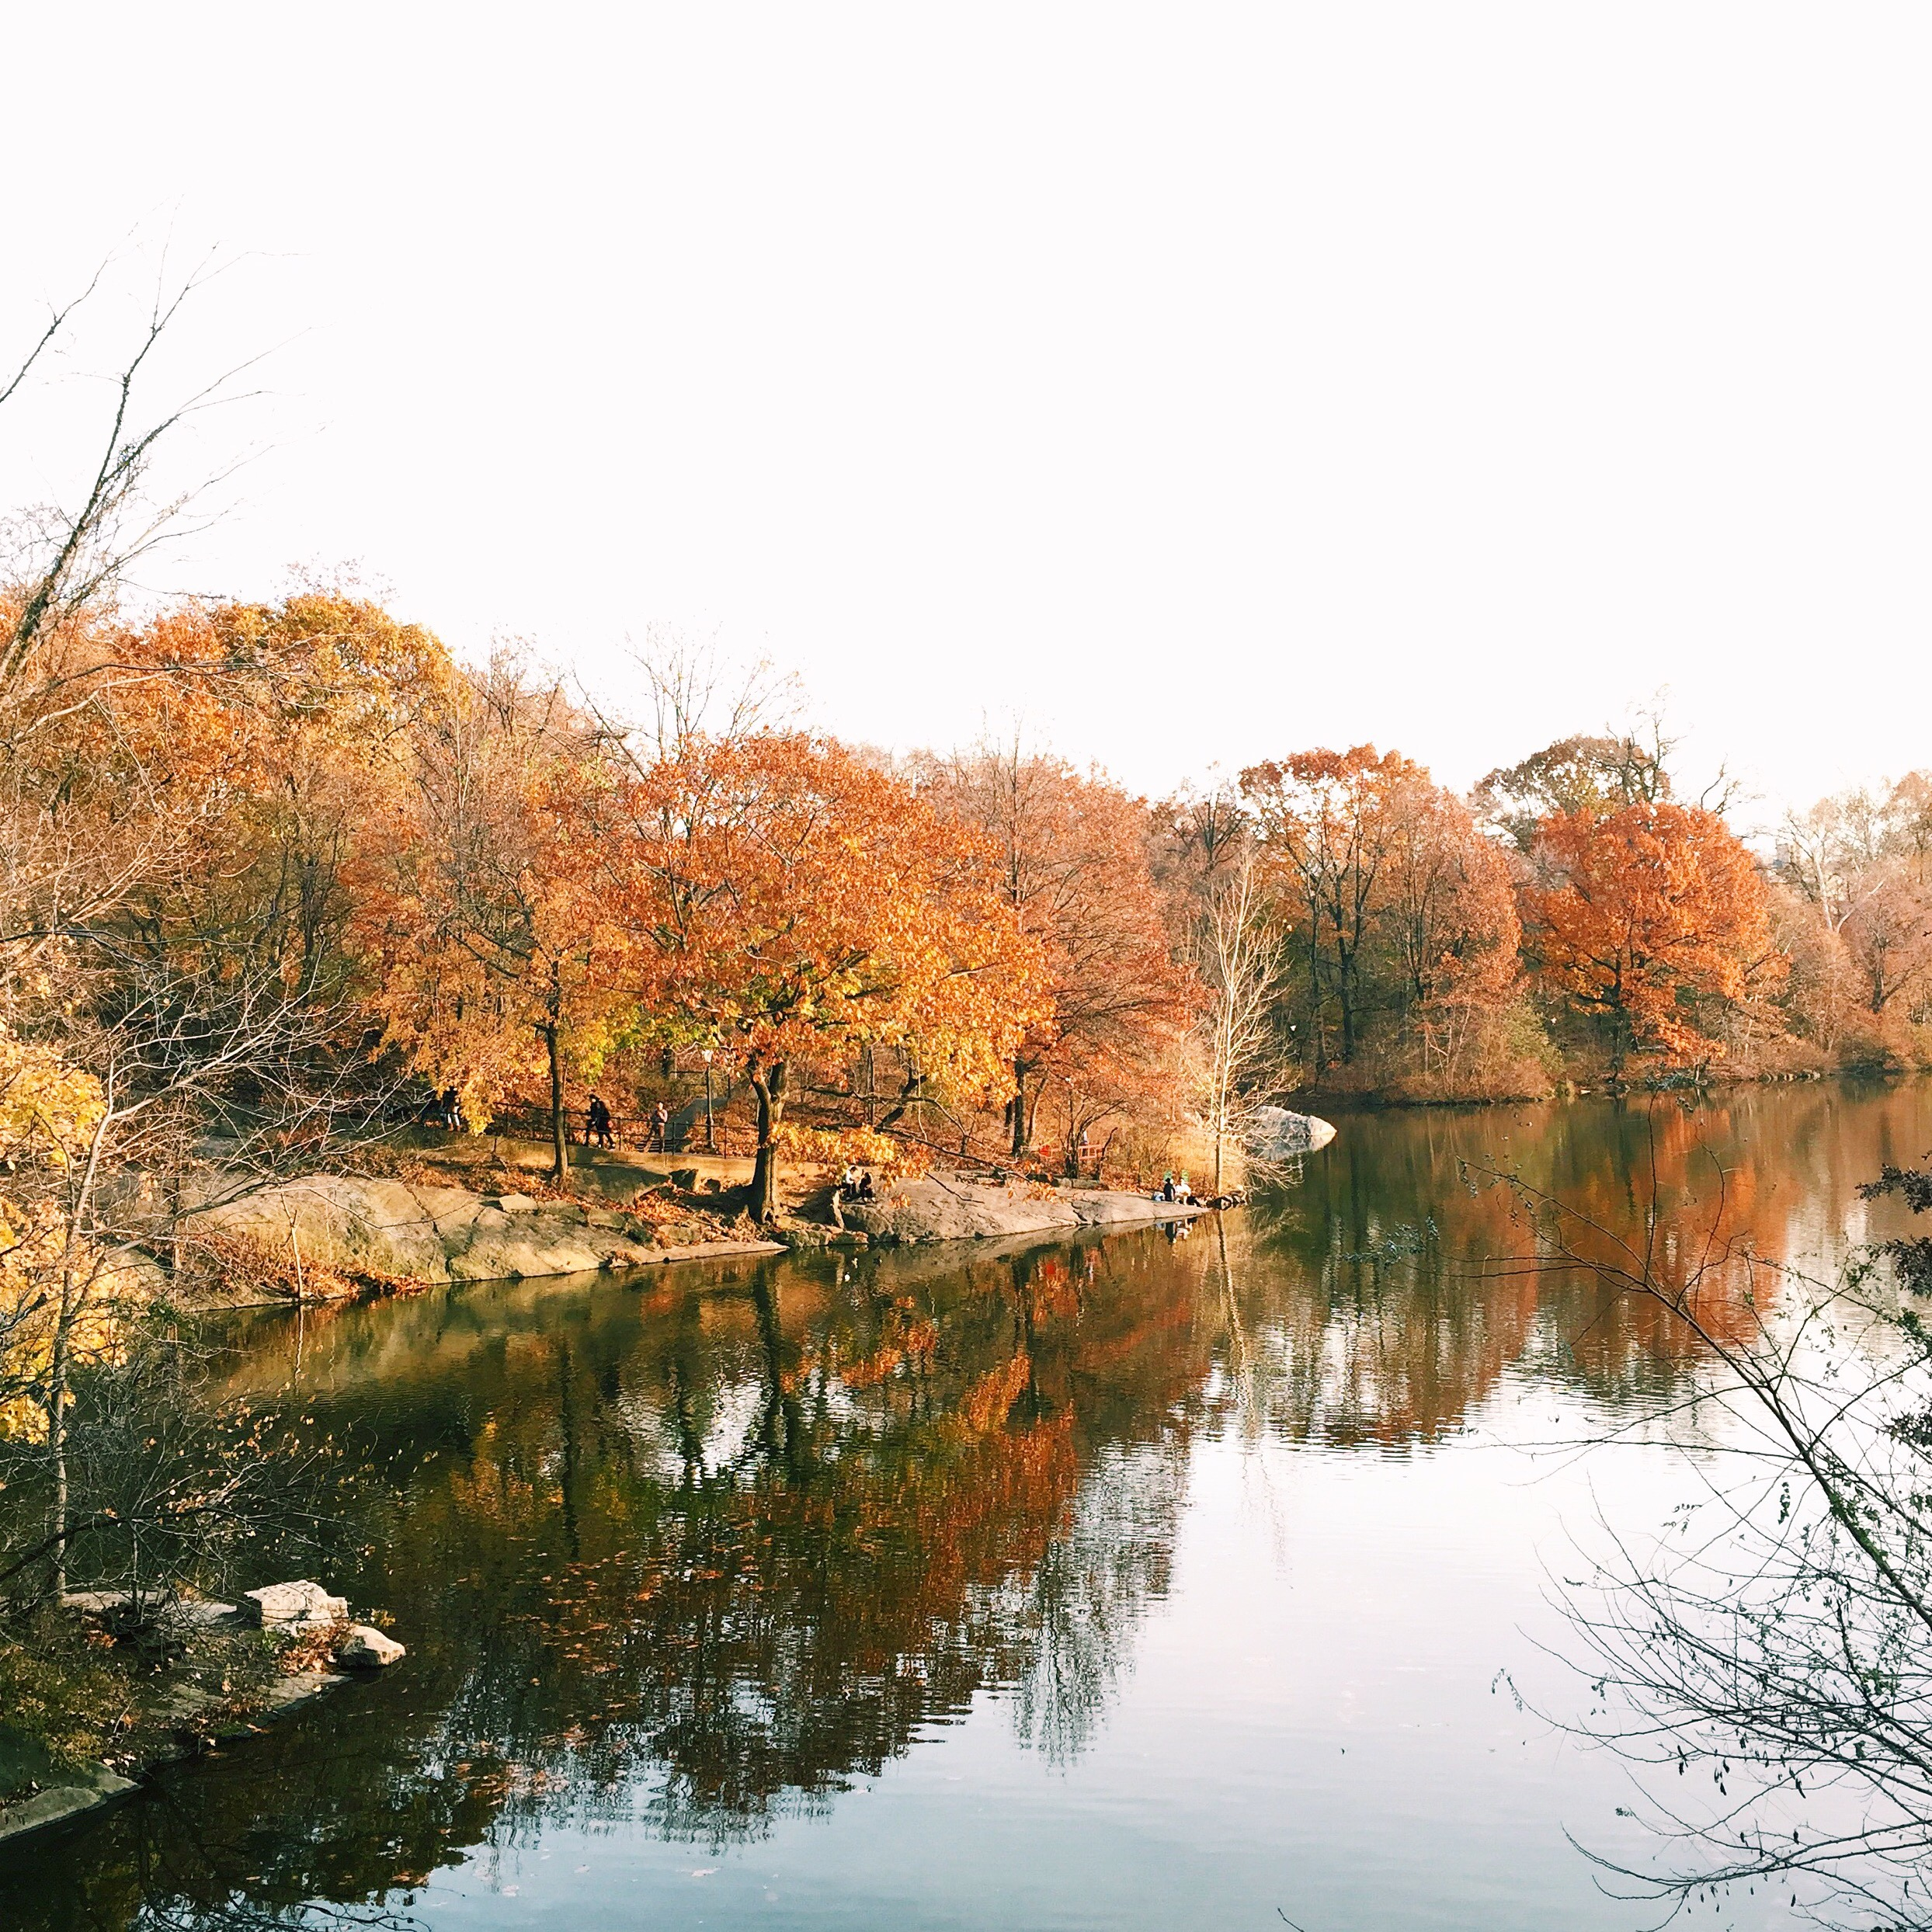 More gorgeous views from Central Park...